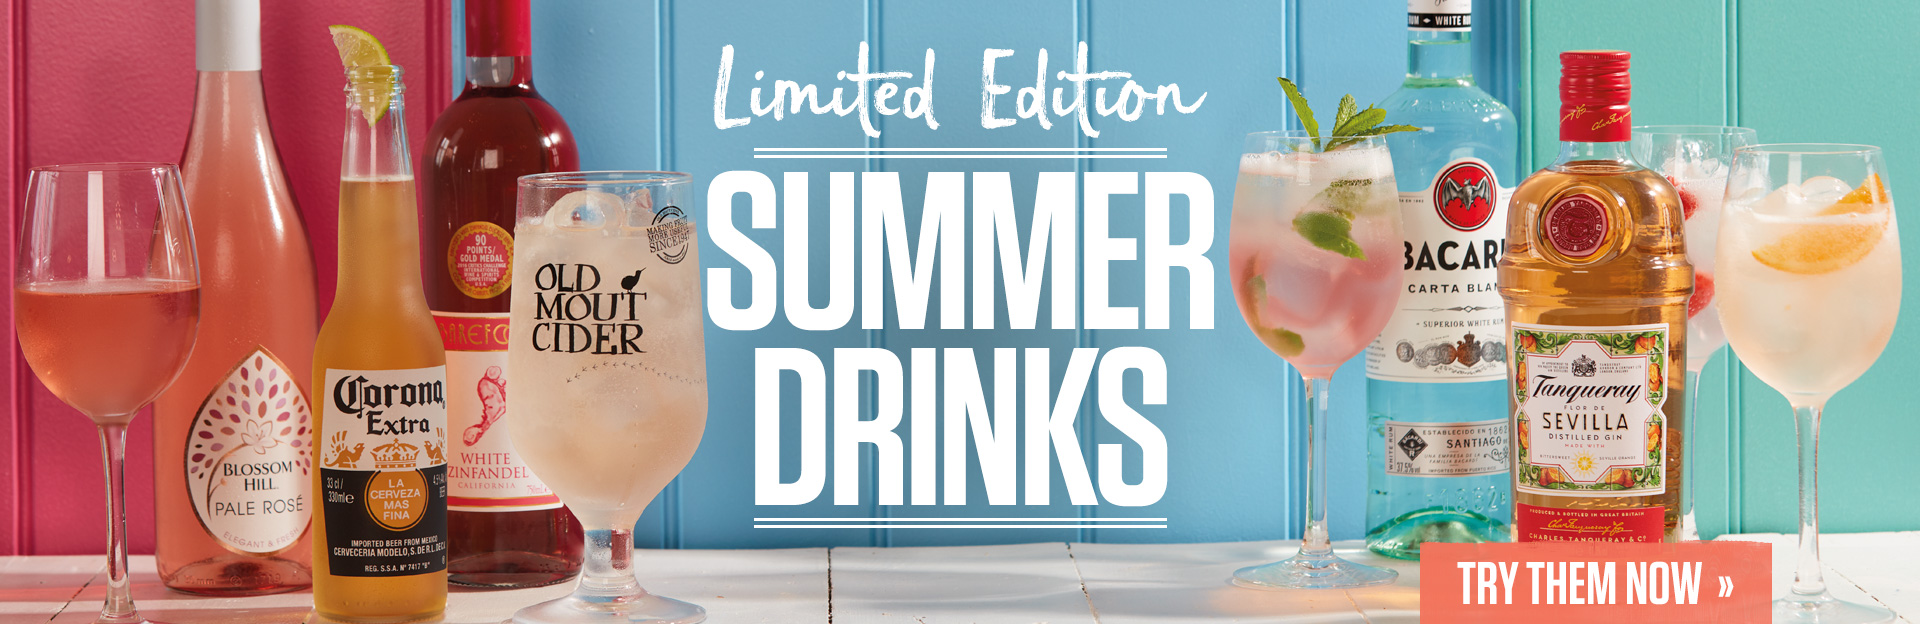 Summer Drinks at The Royal Oak